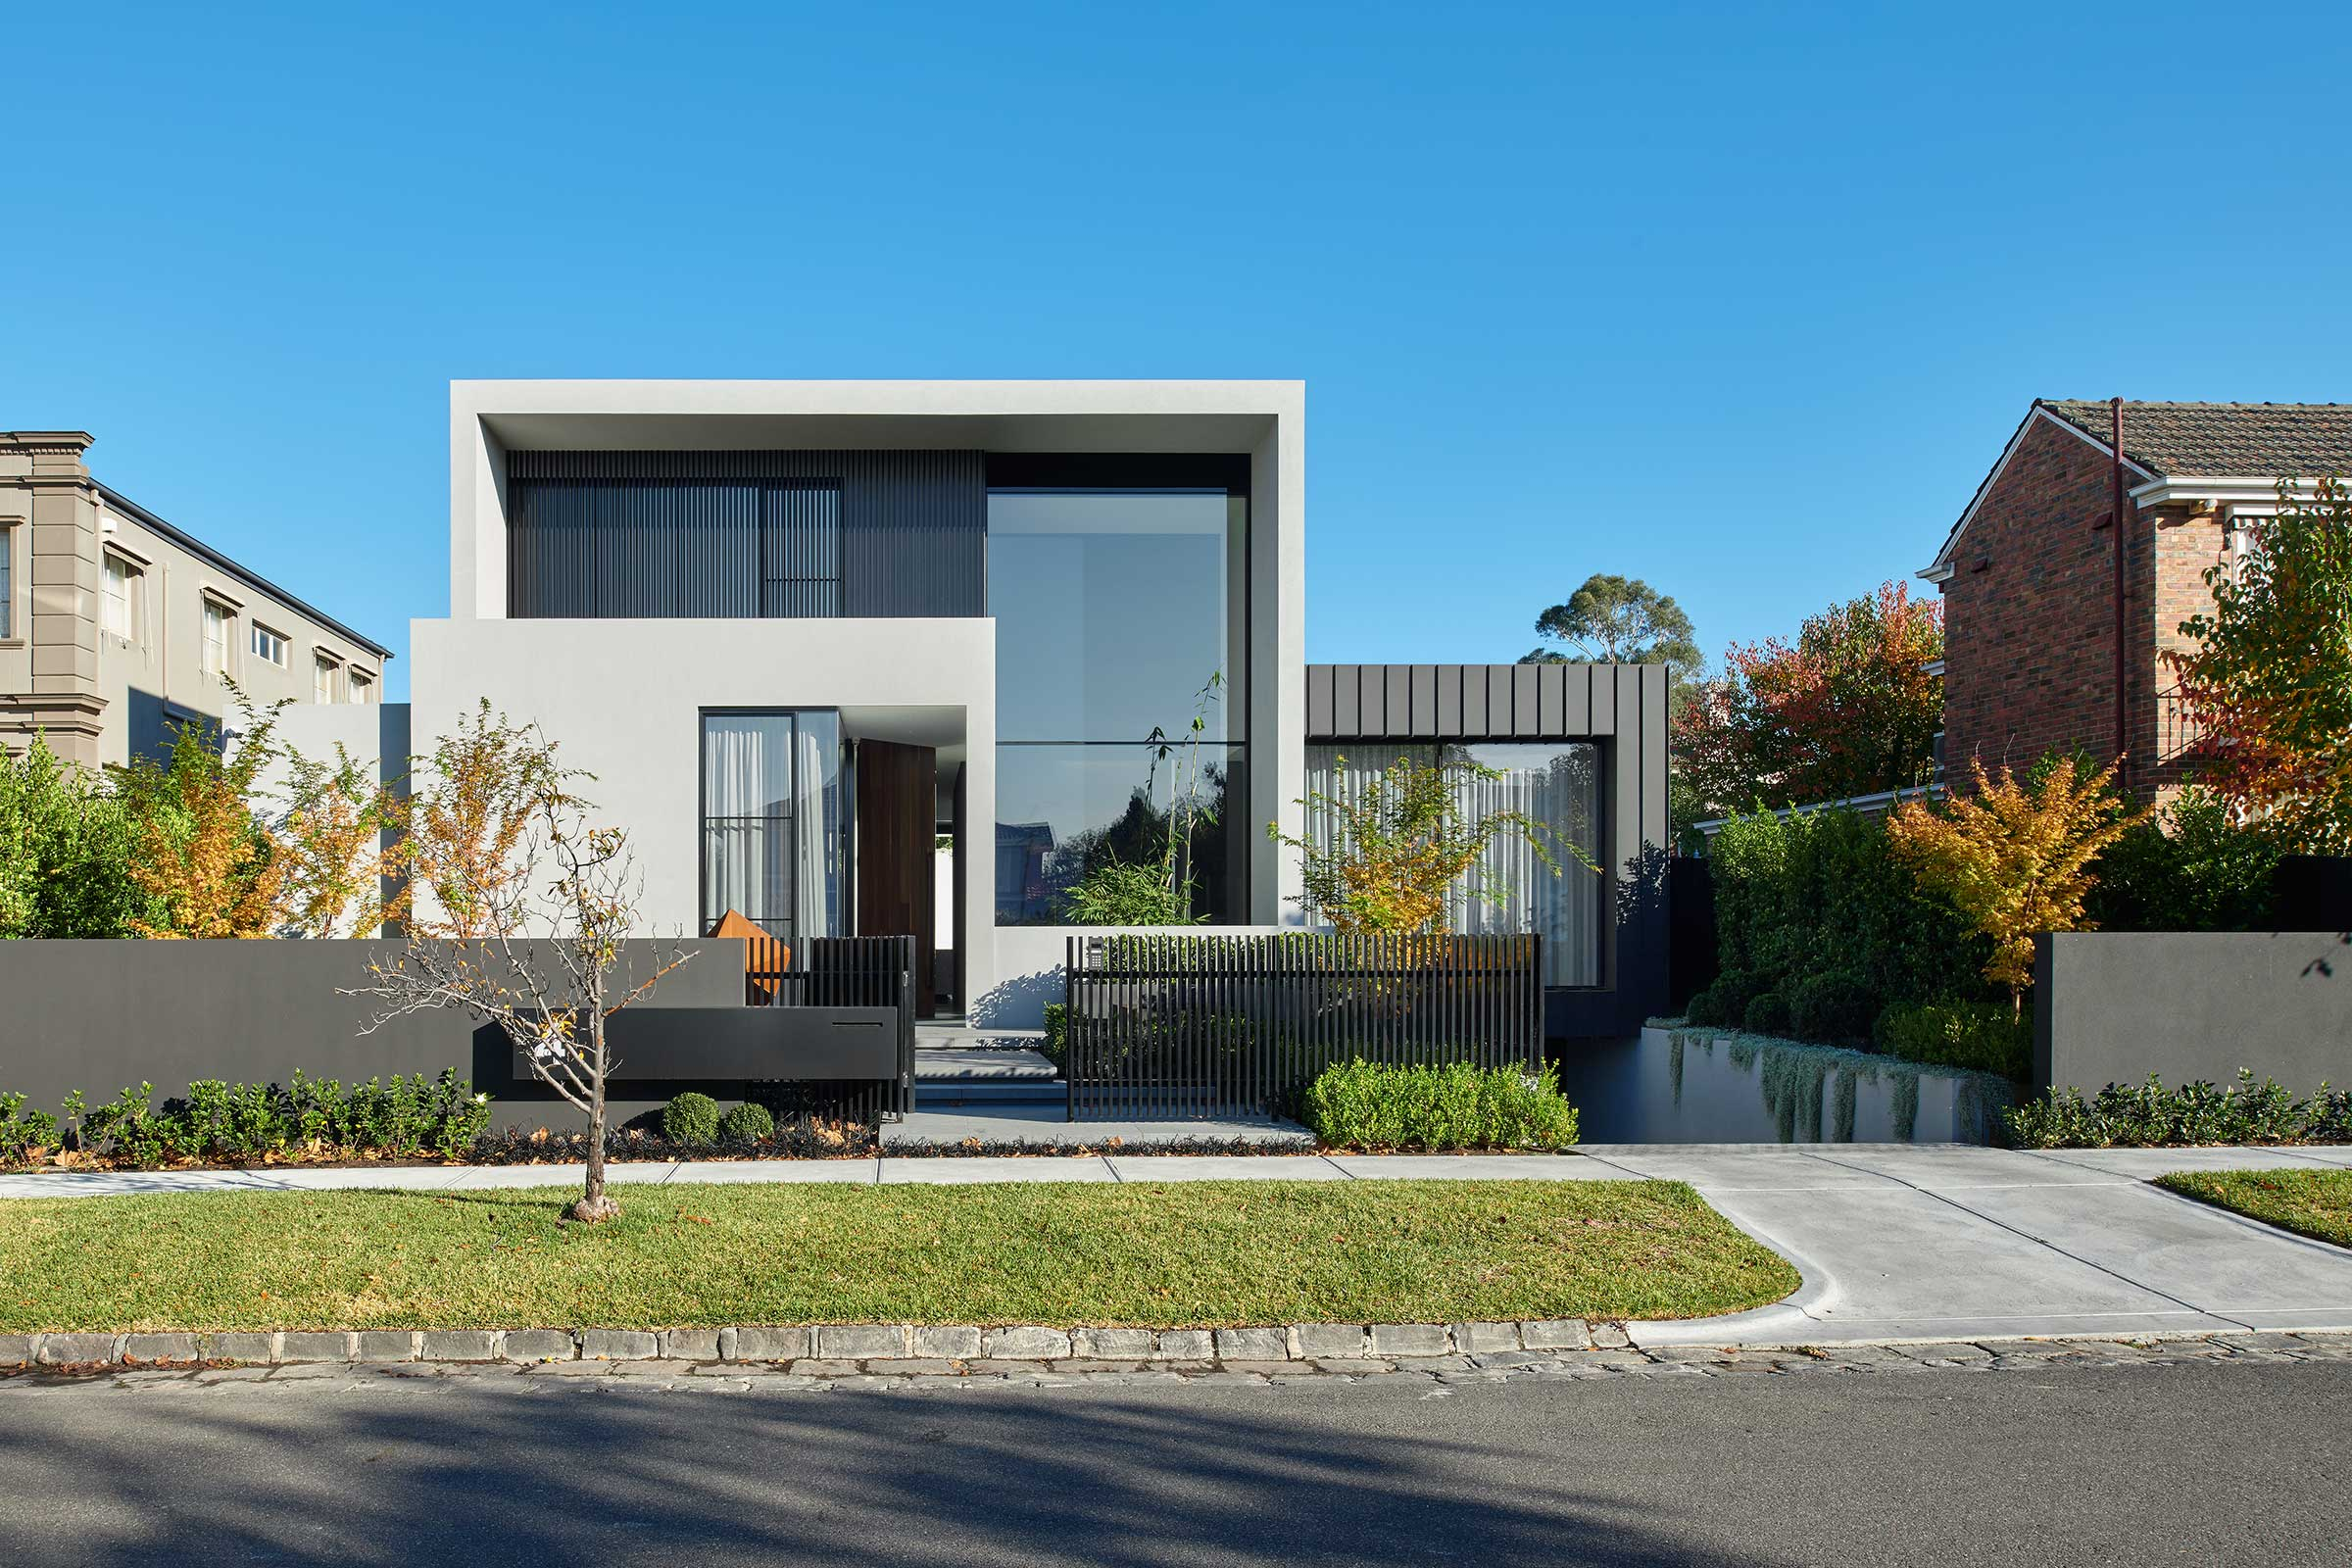 01_taouk_architects_bramley_court_veeral_5341_edit_p.jpg